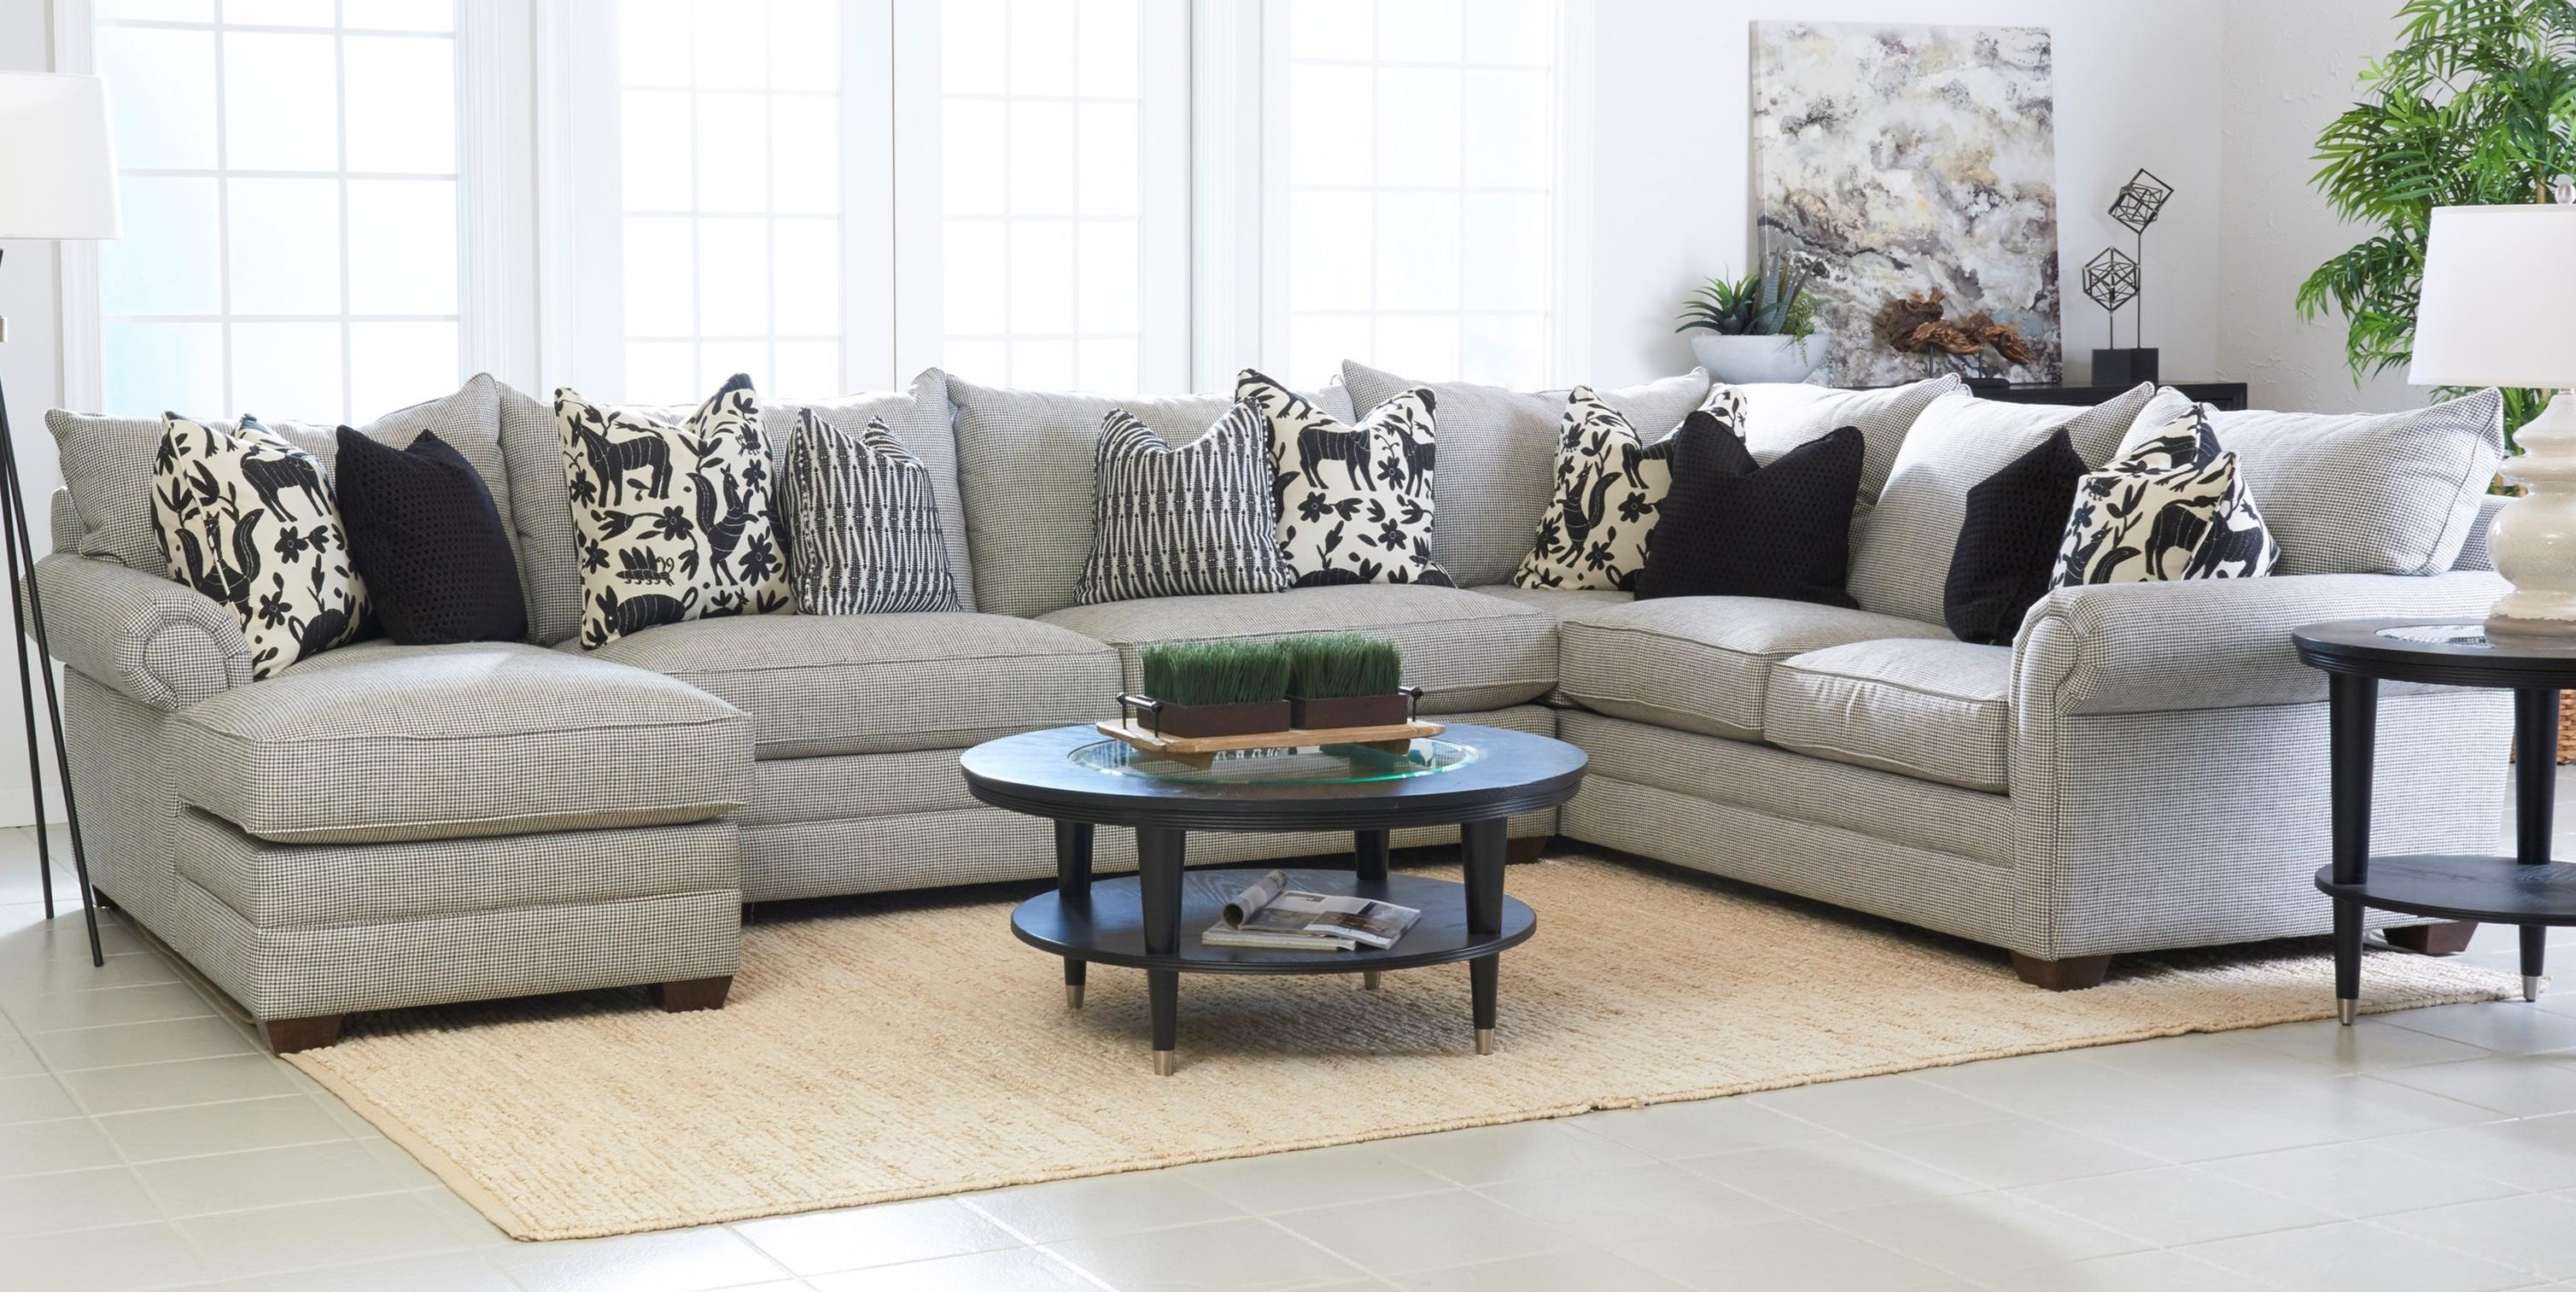 Huntley Four Piece Sectional Sofa with LAF Chaise by Klaussner at Wayside  Furniture